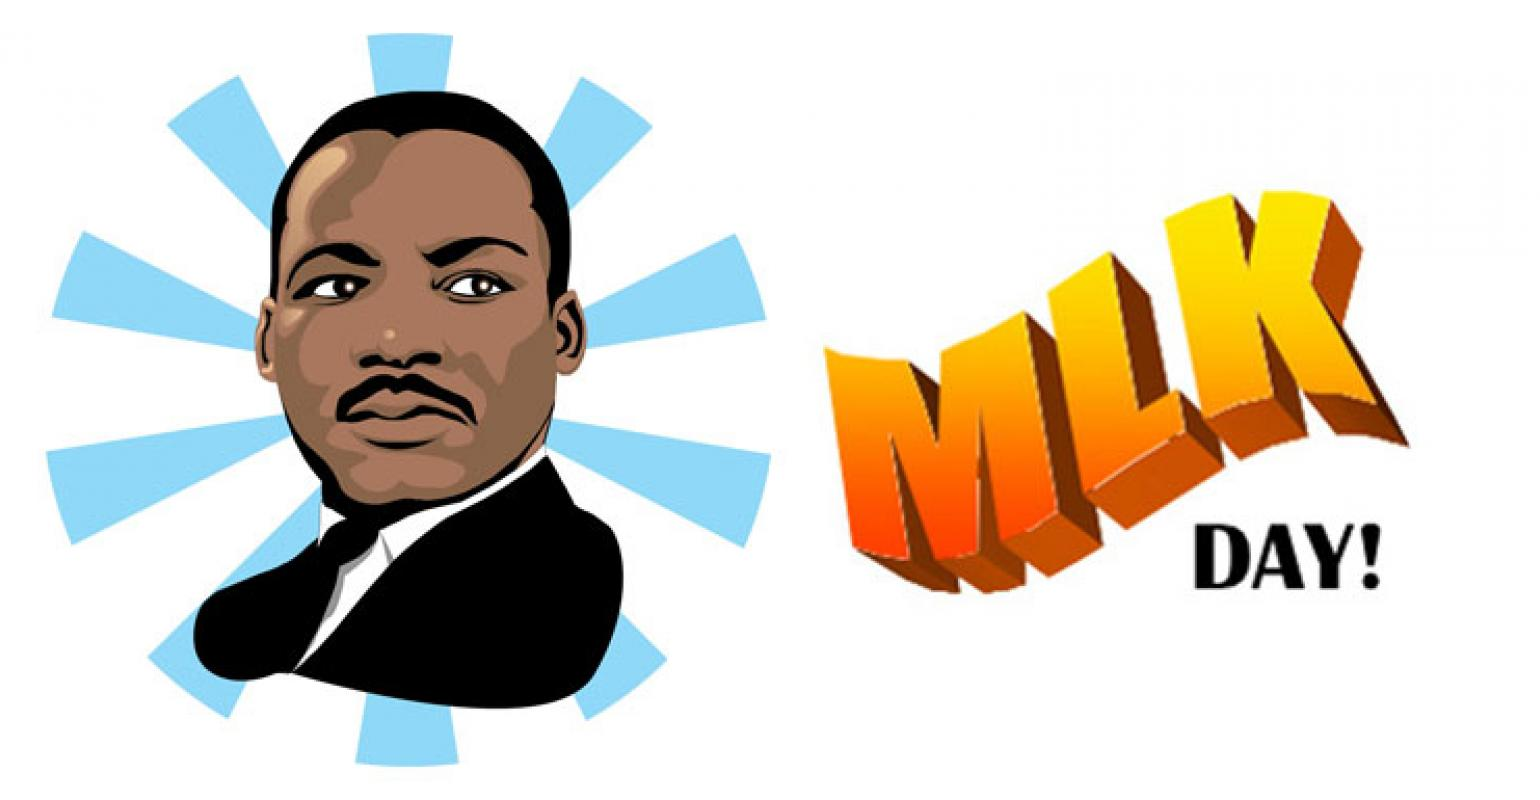 dr martin luther king jr clipart at getdrawings com free for rh getdrawings com martin luther king clip art free images martin luther king clipart